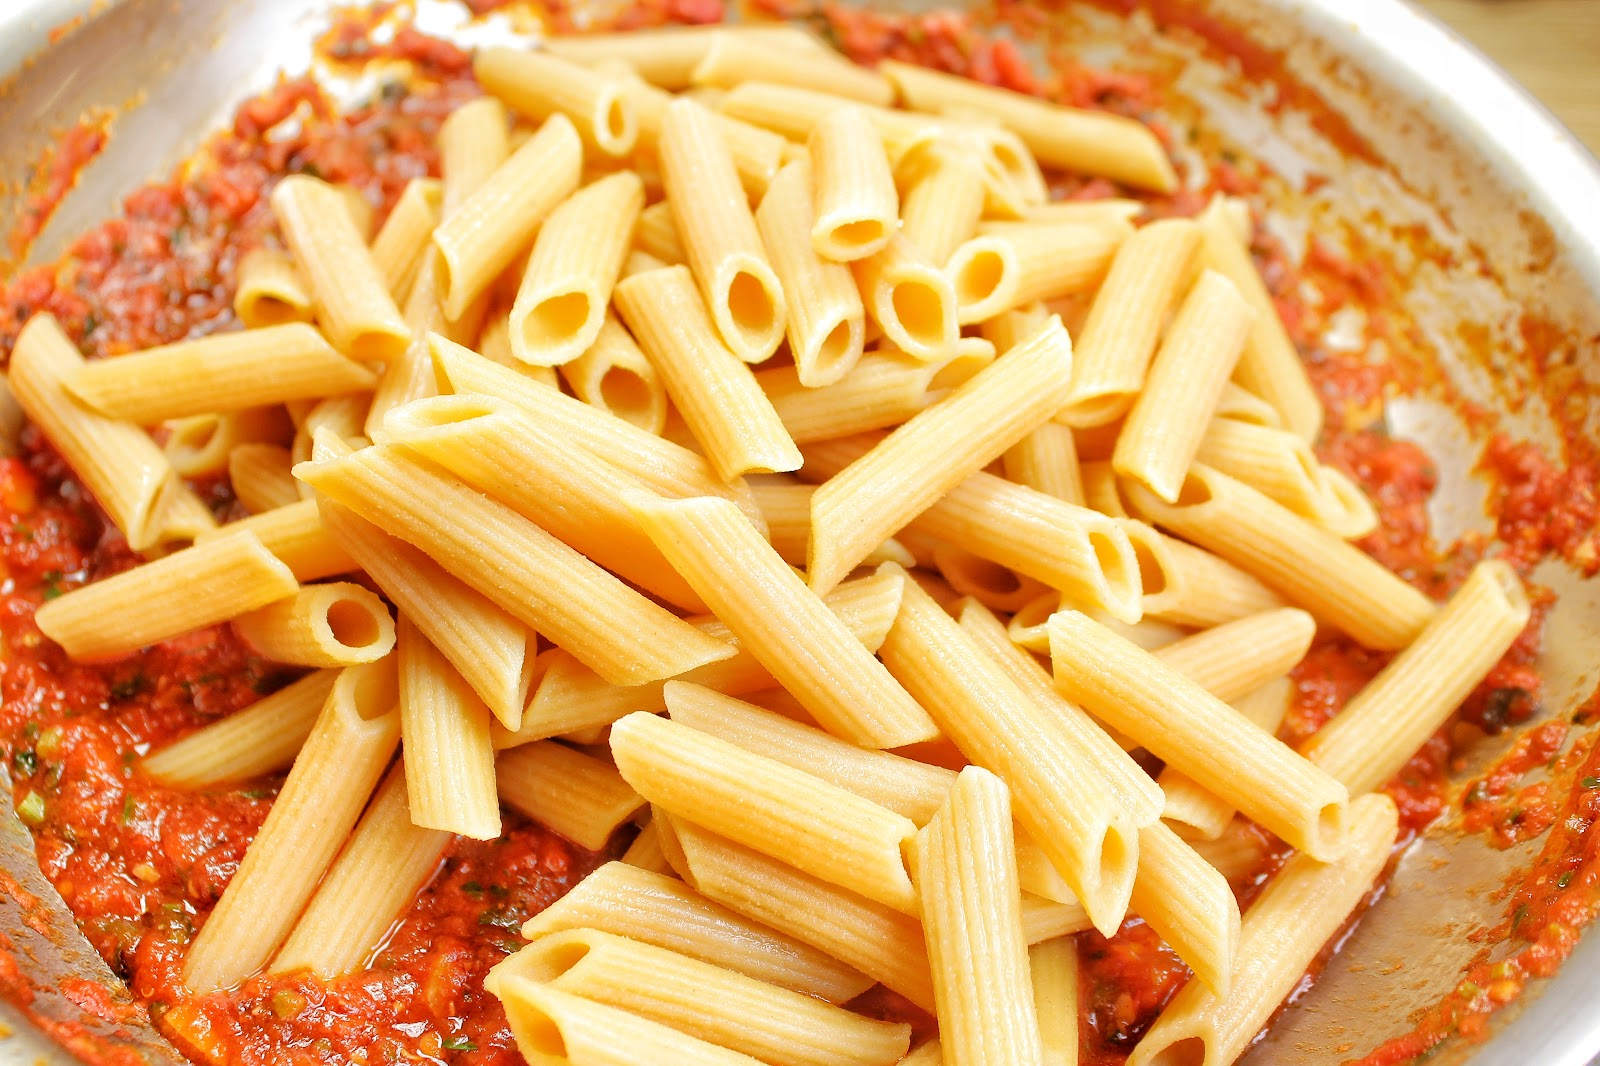 Arrabbiata Sauce Angry Pasta My Body My Kitchen Explore Cuisine Sauce & Penne